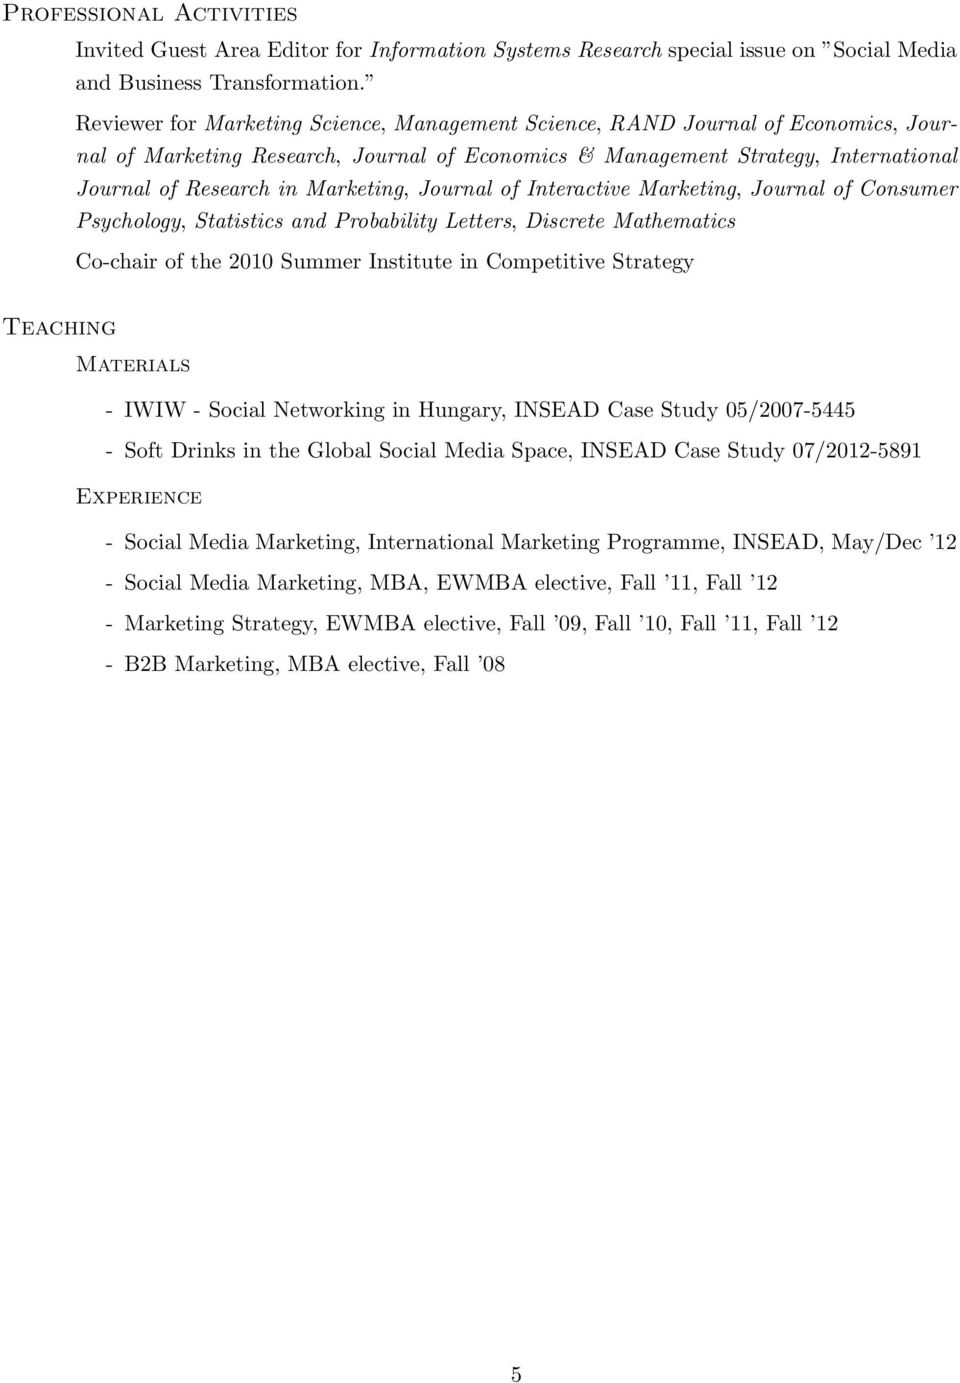 Marketing, Journal of Interactive Marketing, Journal of Consumer Psychology, Statistics and Probability Letters, Discrete Mathematics Co-chair of the 2010 Summer Institute in Competitive Strategy